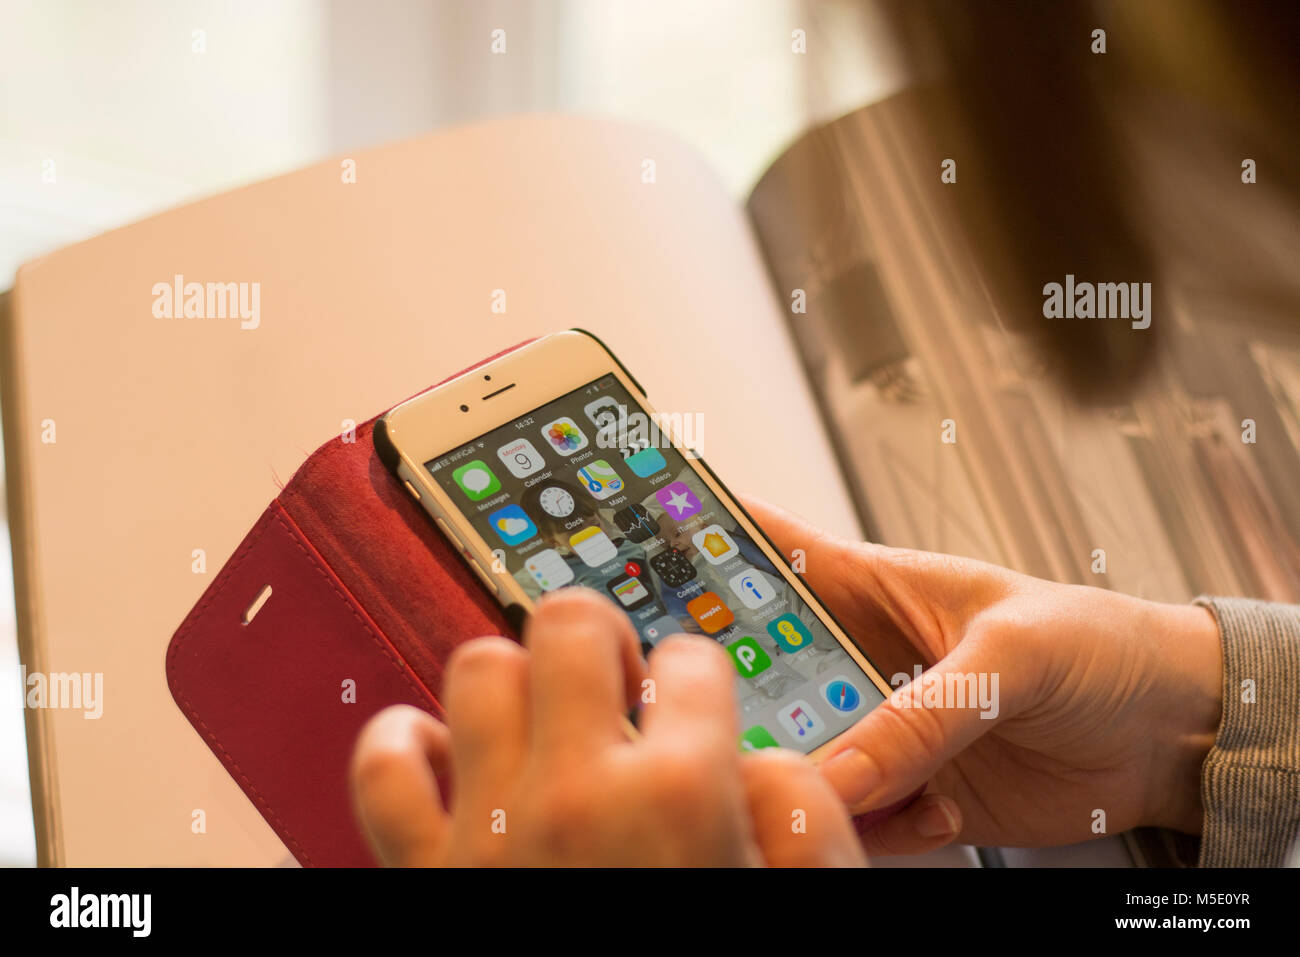 A woman using her iPhone, with a number of apps on the home screen - Stock Image